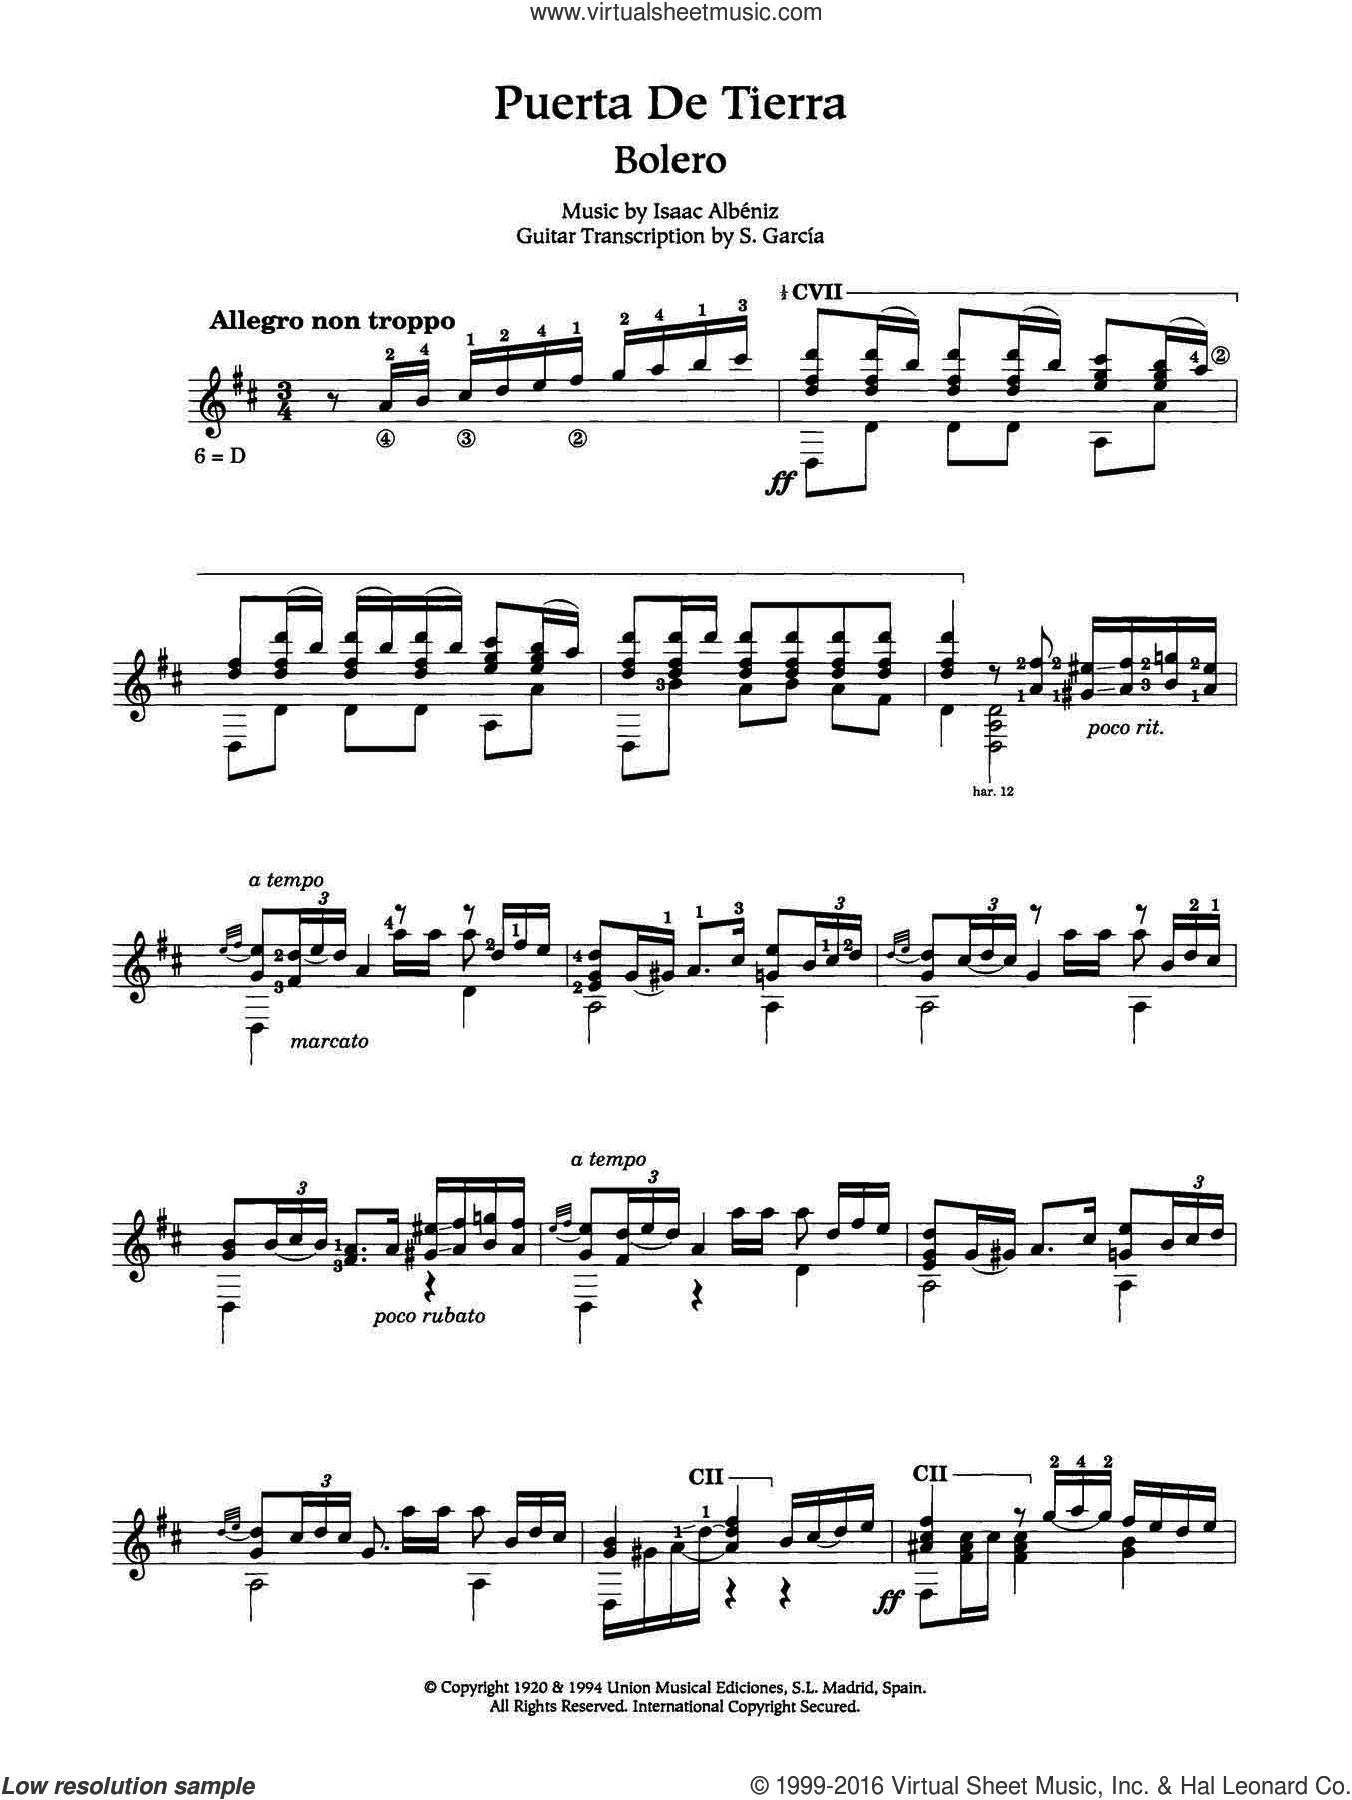 Puerta De Tierra sheet music for guitar solo (chords) by Isaac Albeniz. Score Image Preview.